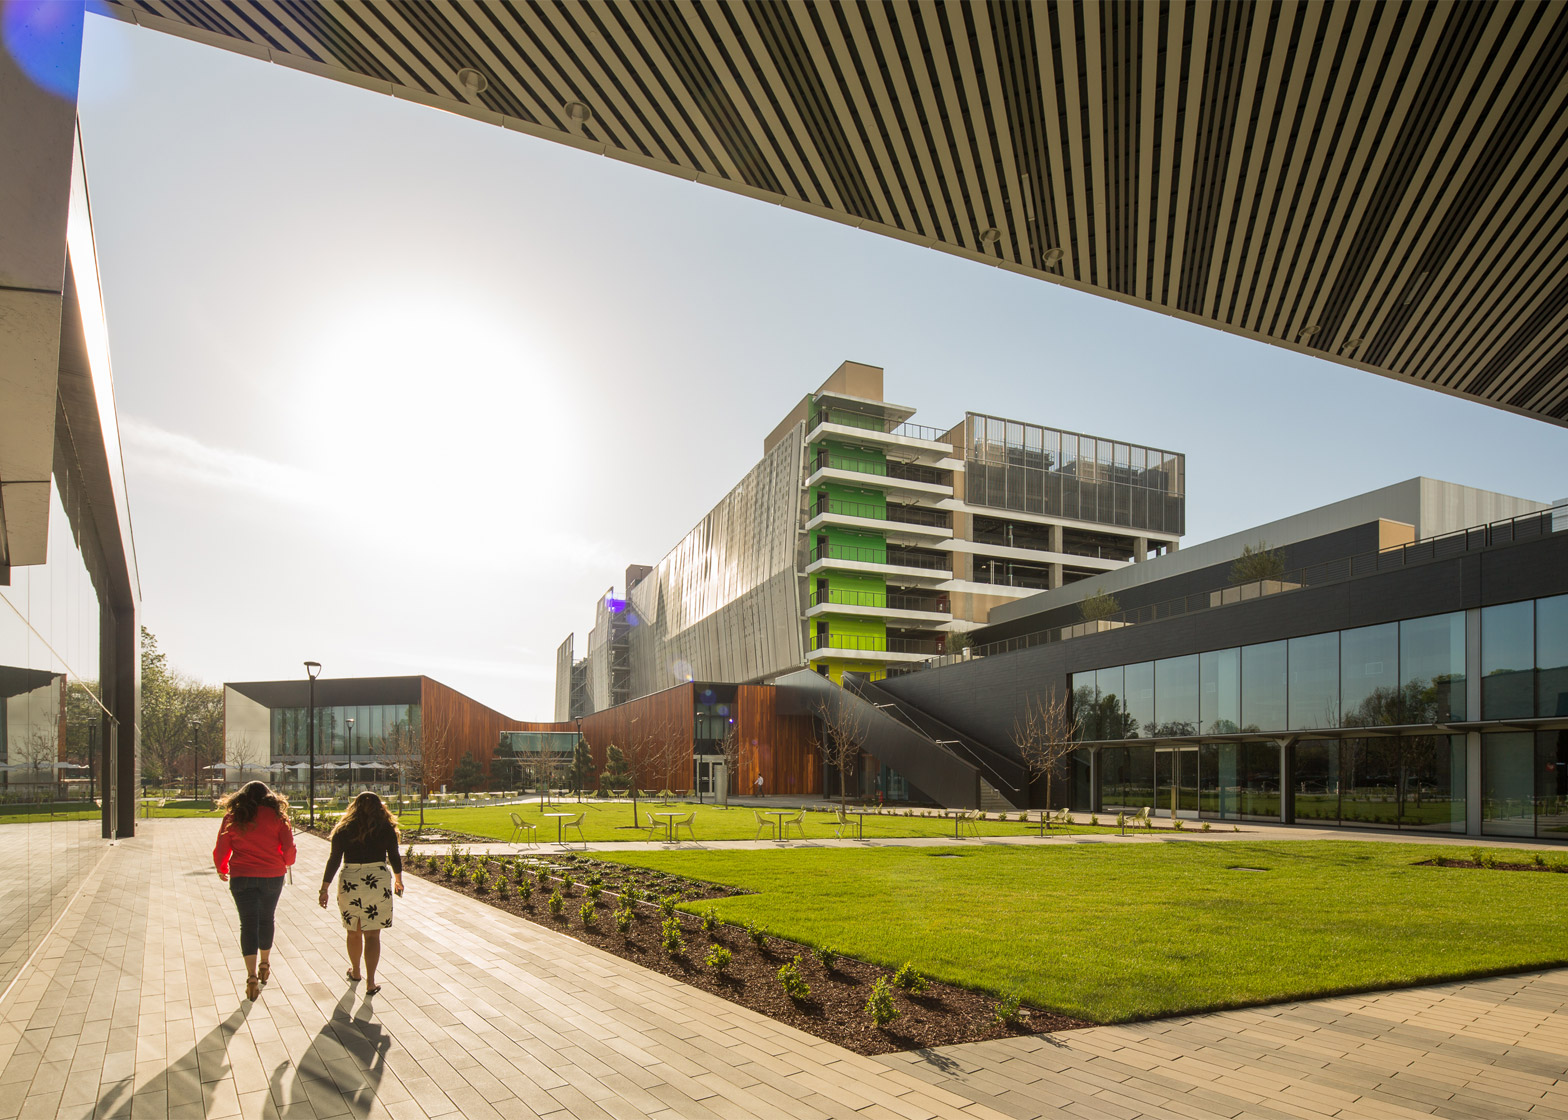 Samsung campus by NBBJ